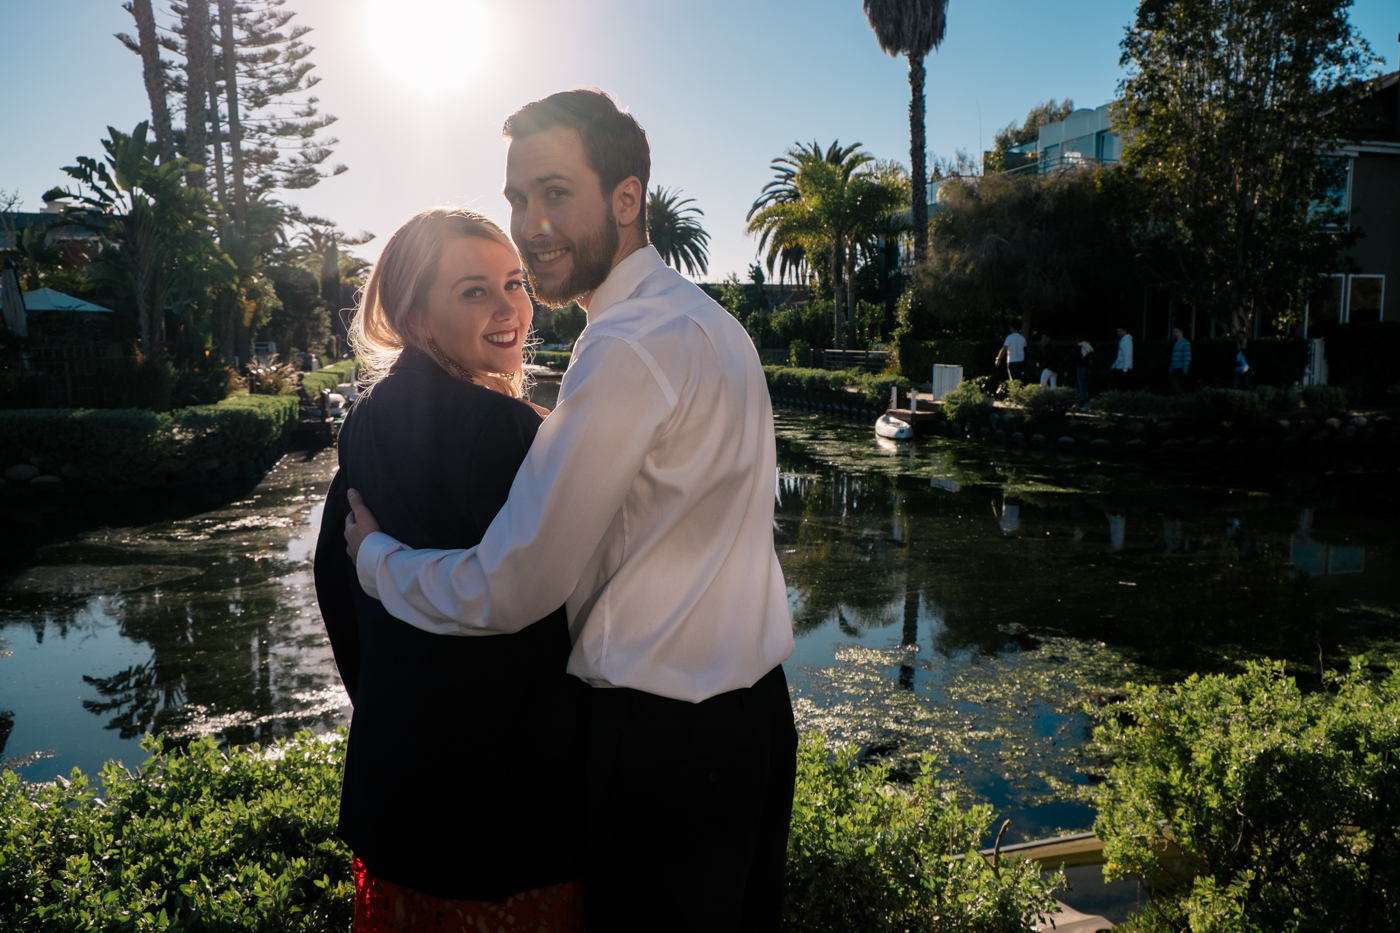 Benjamin puts his suit coat on Debora Dahl for Valentines Day at the Venice Canals